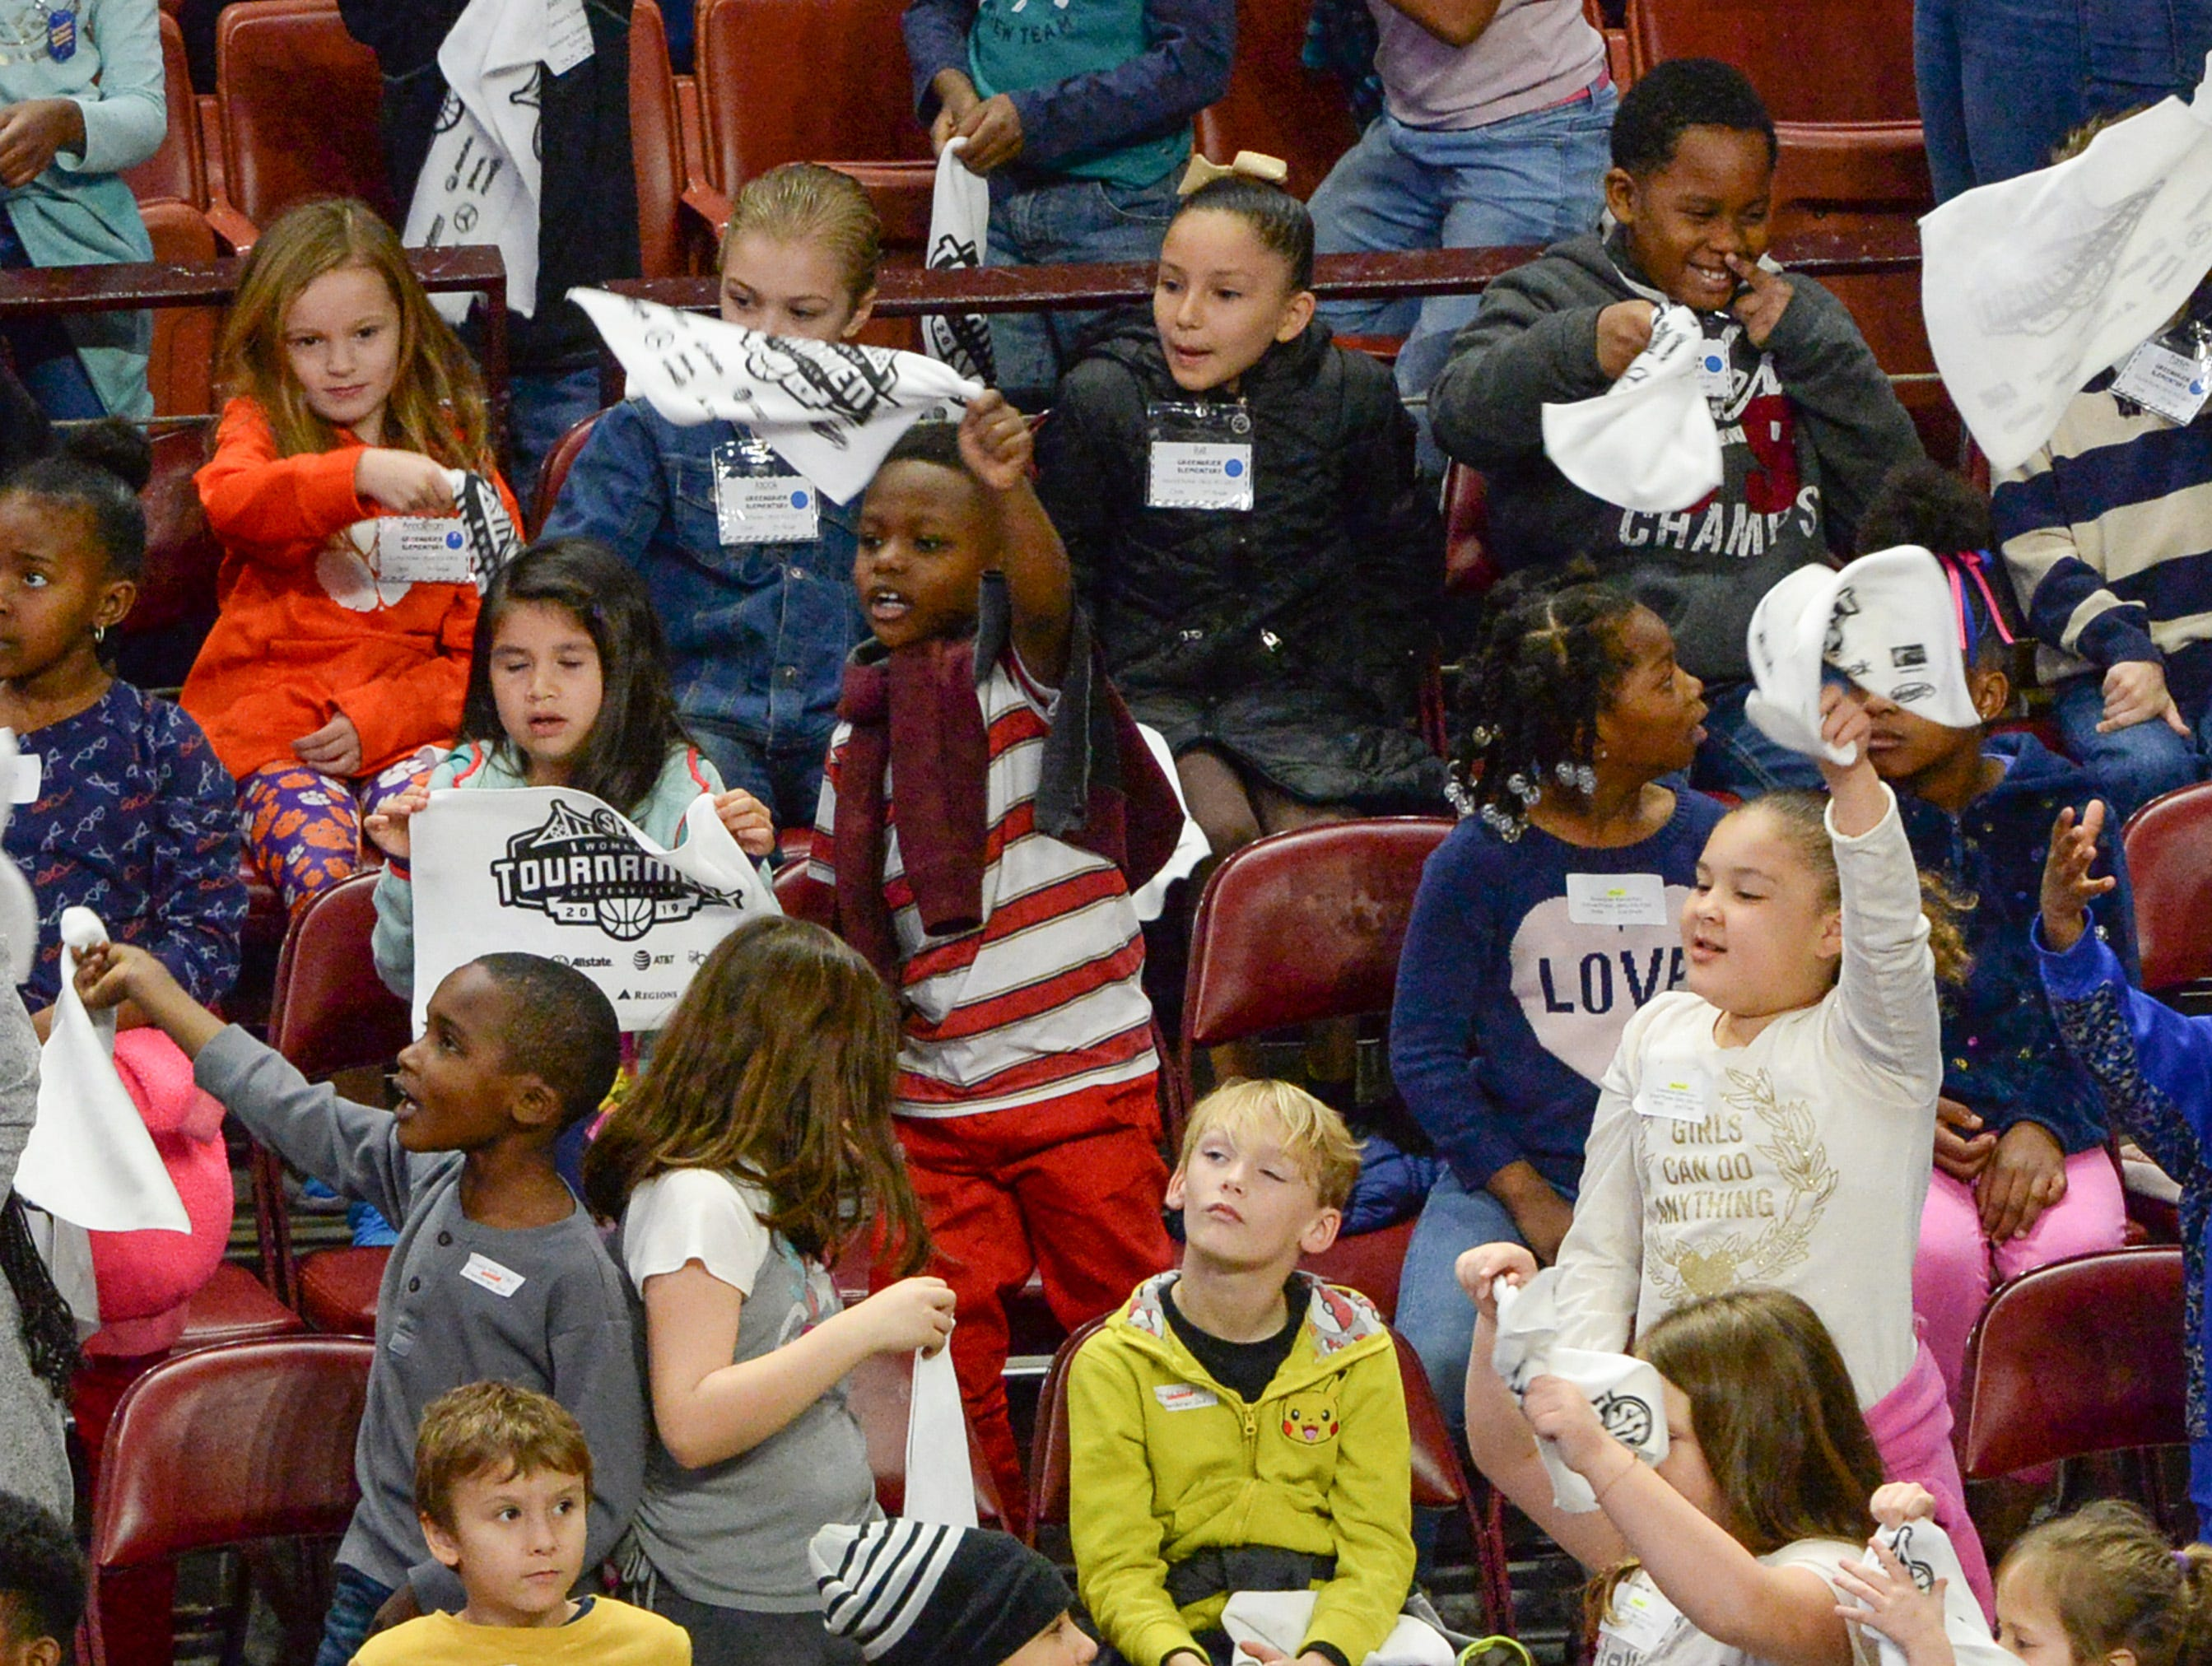 Greenbriar Elementary wave towels cheering during the first SEC Women's basketball tournament game, Ole Miss and Florida, in Greenville Wednesday. The tournament lasts through Sunday.